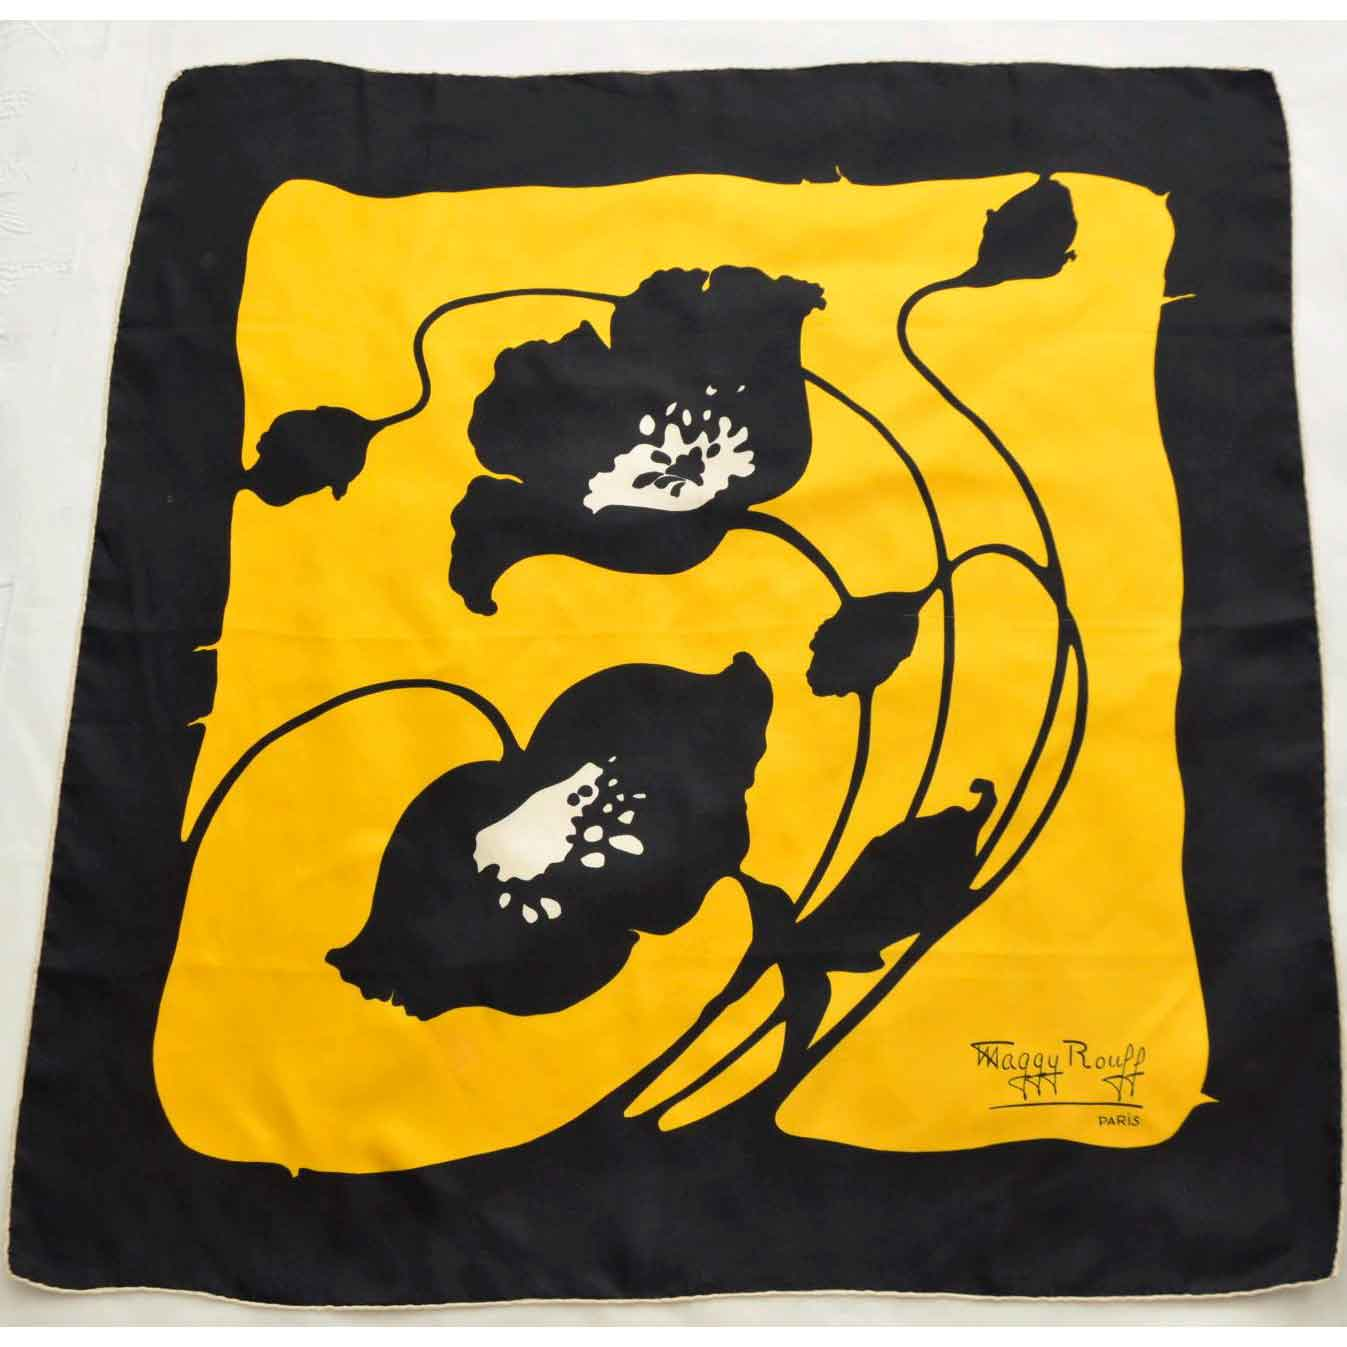 Frenc-Dramatic-1960s-Vintage-Maggy-Rouff-Paris-designer-silk-scarf-07